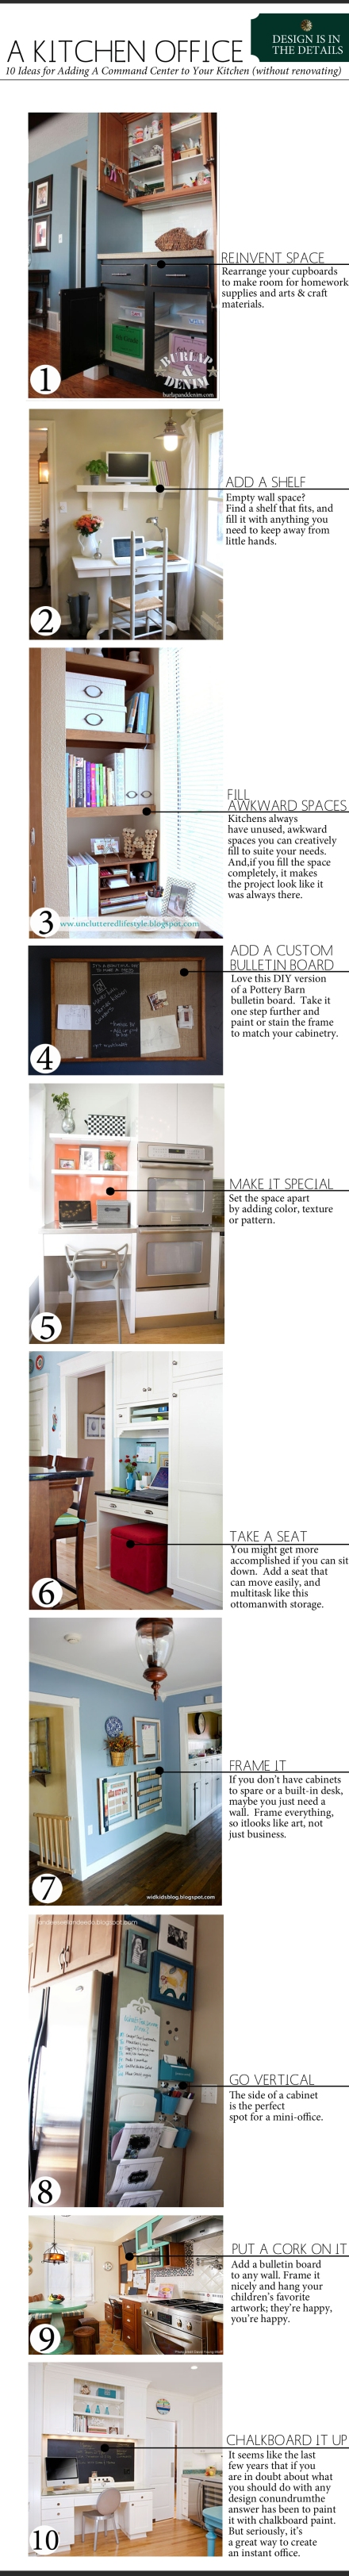 details-to-add-an-office-to-your-kitchen copy